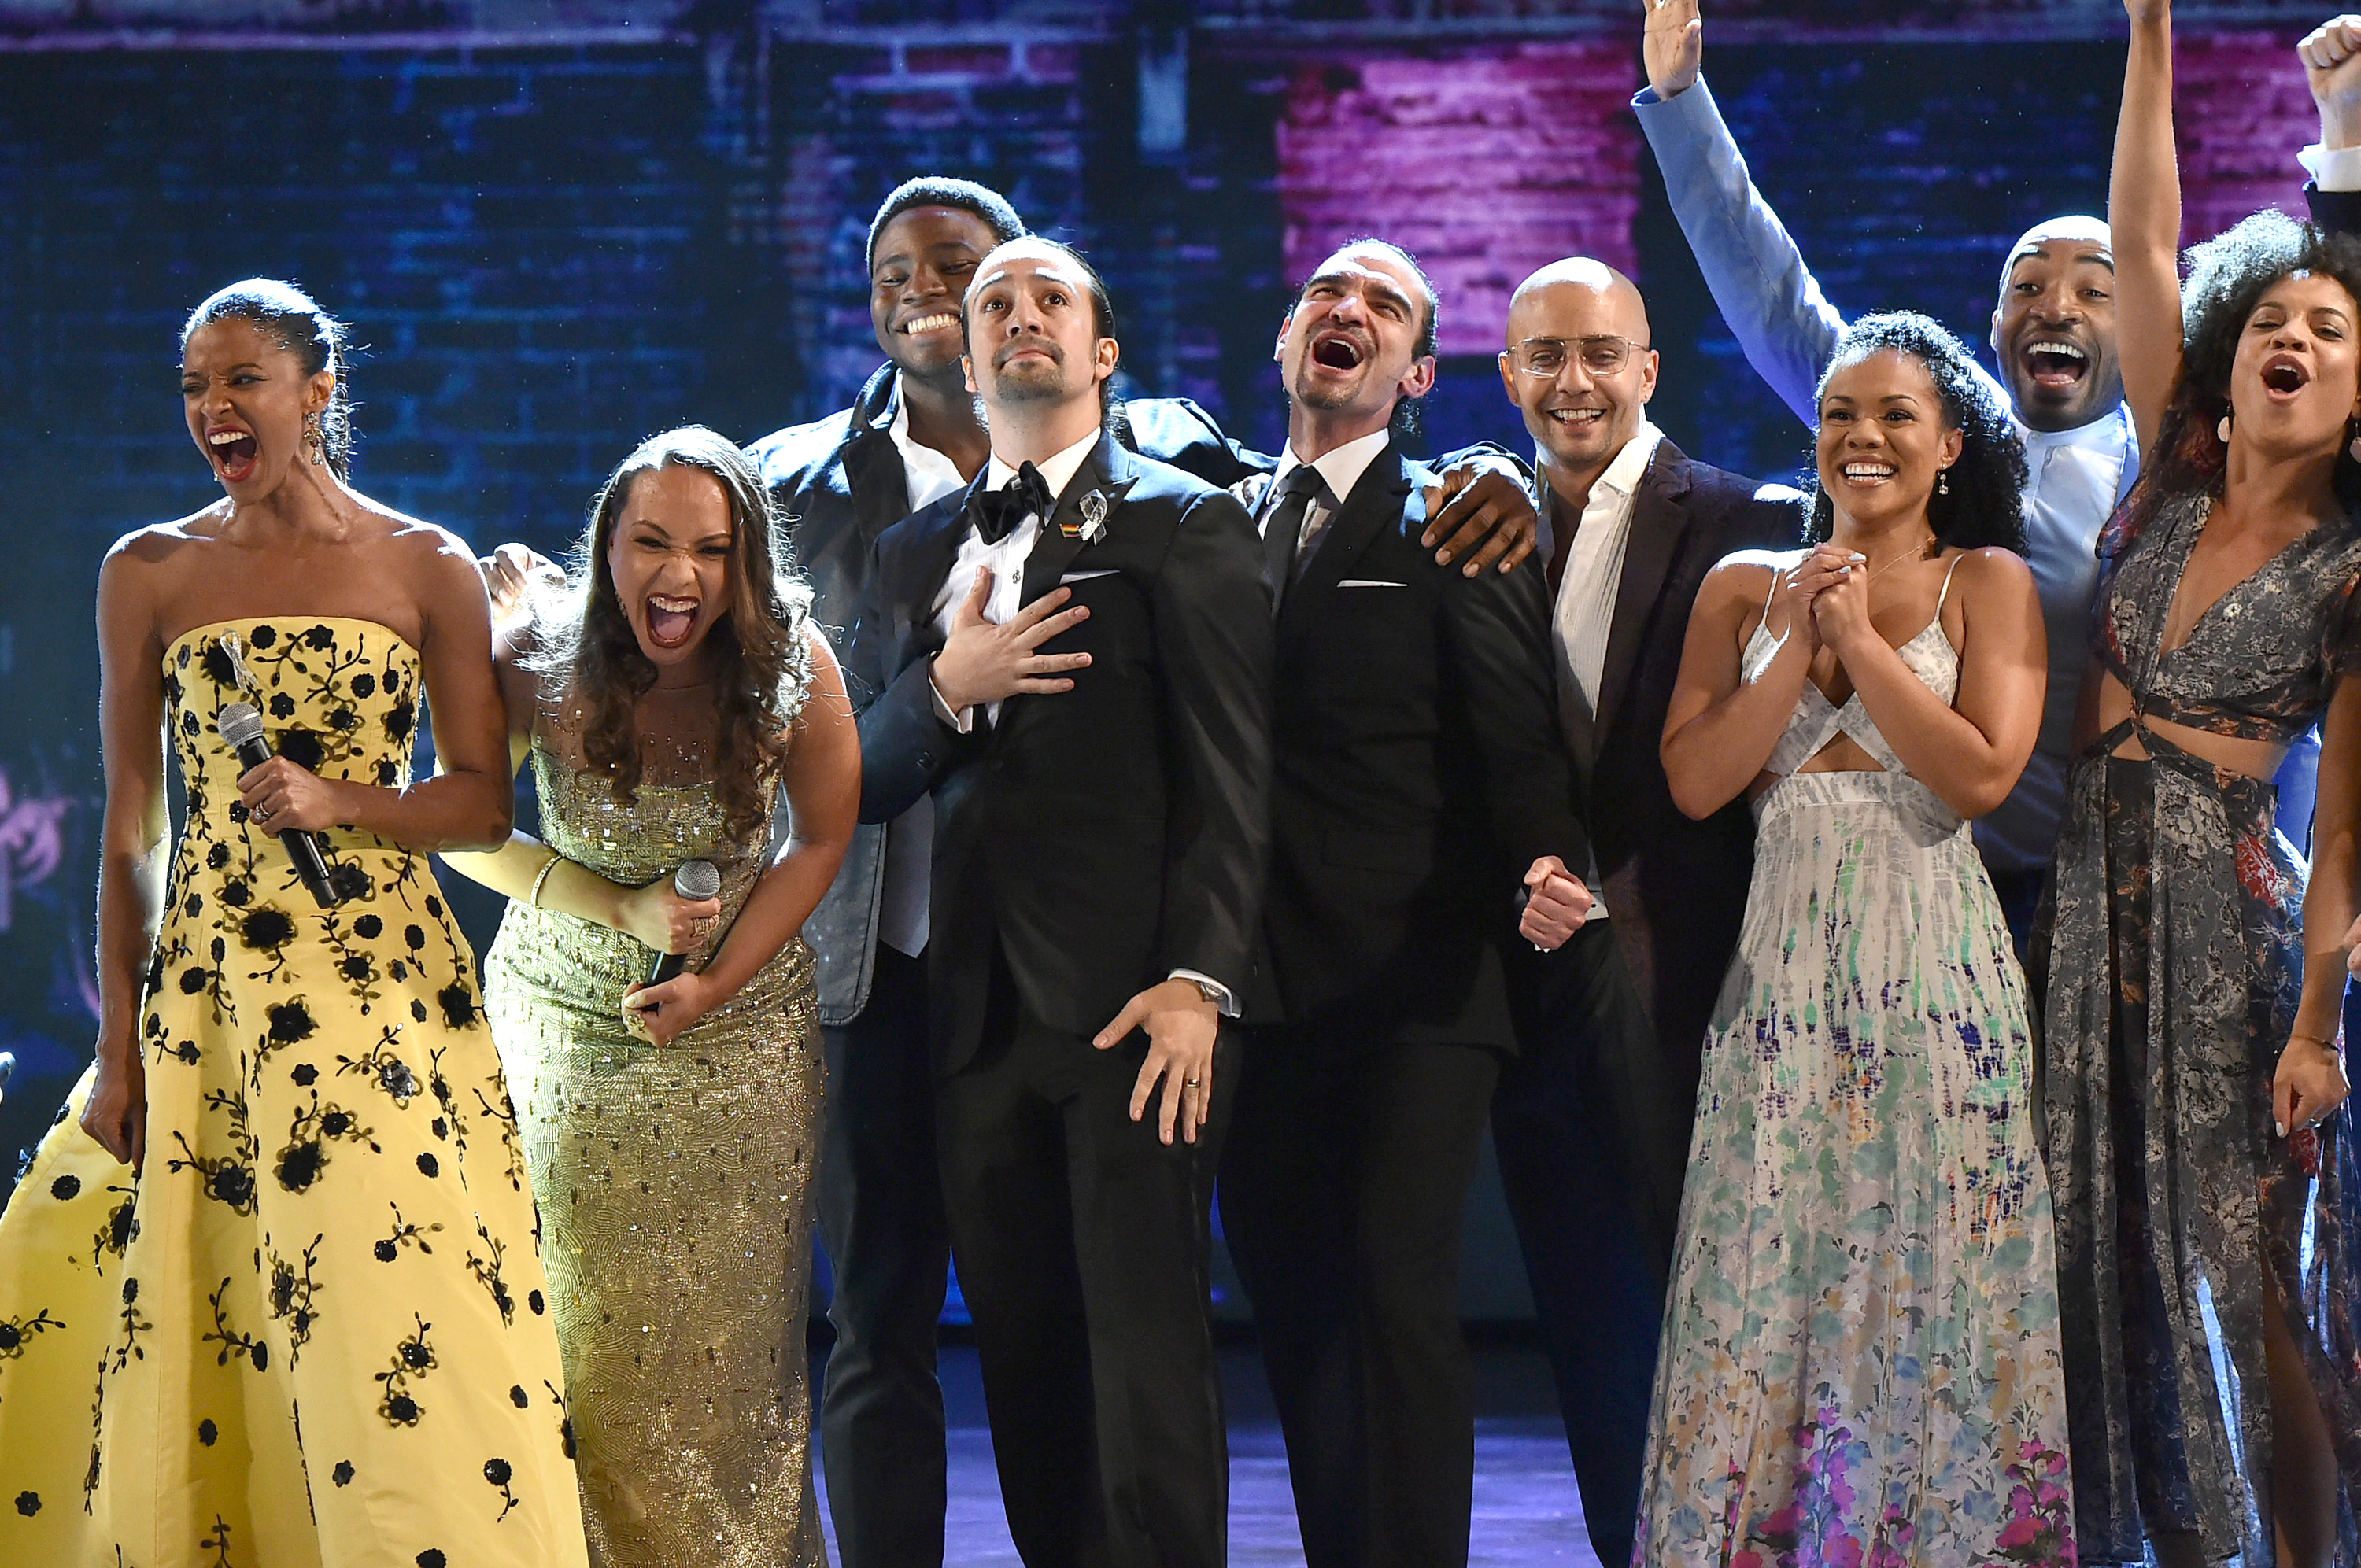 20 Best, Worst and WTF Moments at 2016 Tony Awards – Rolling